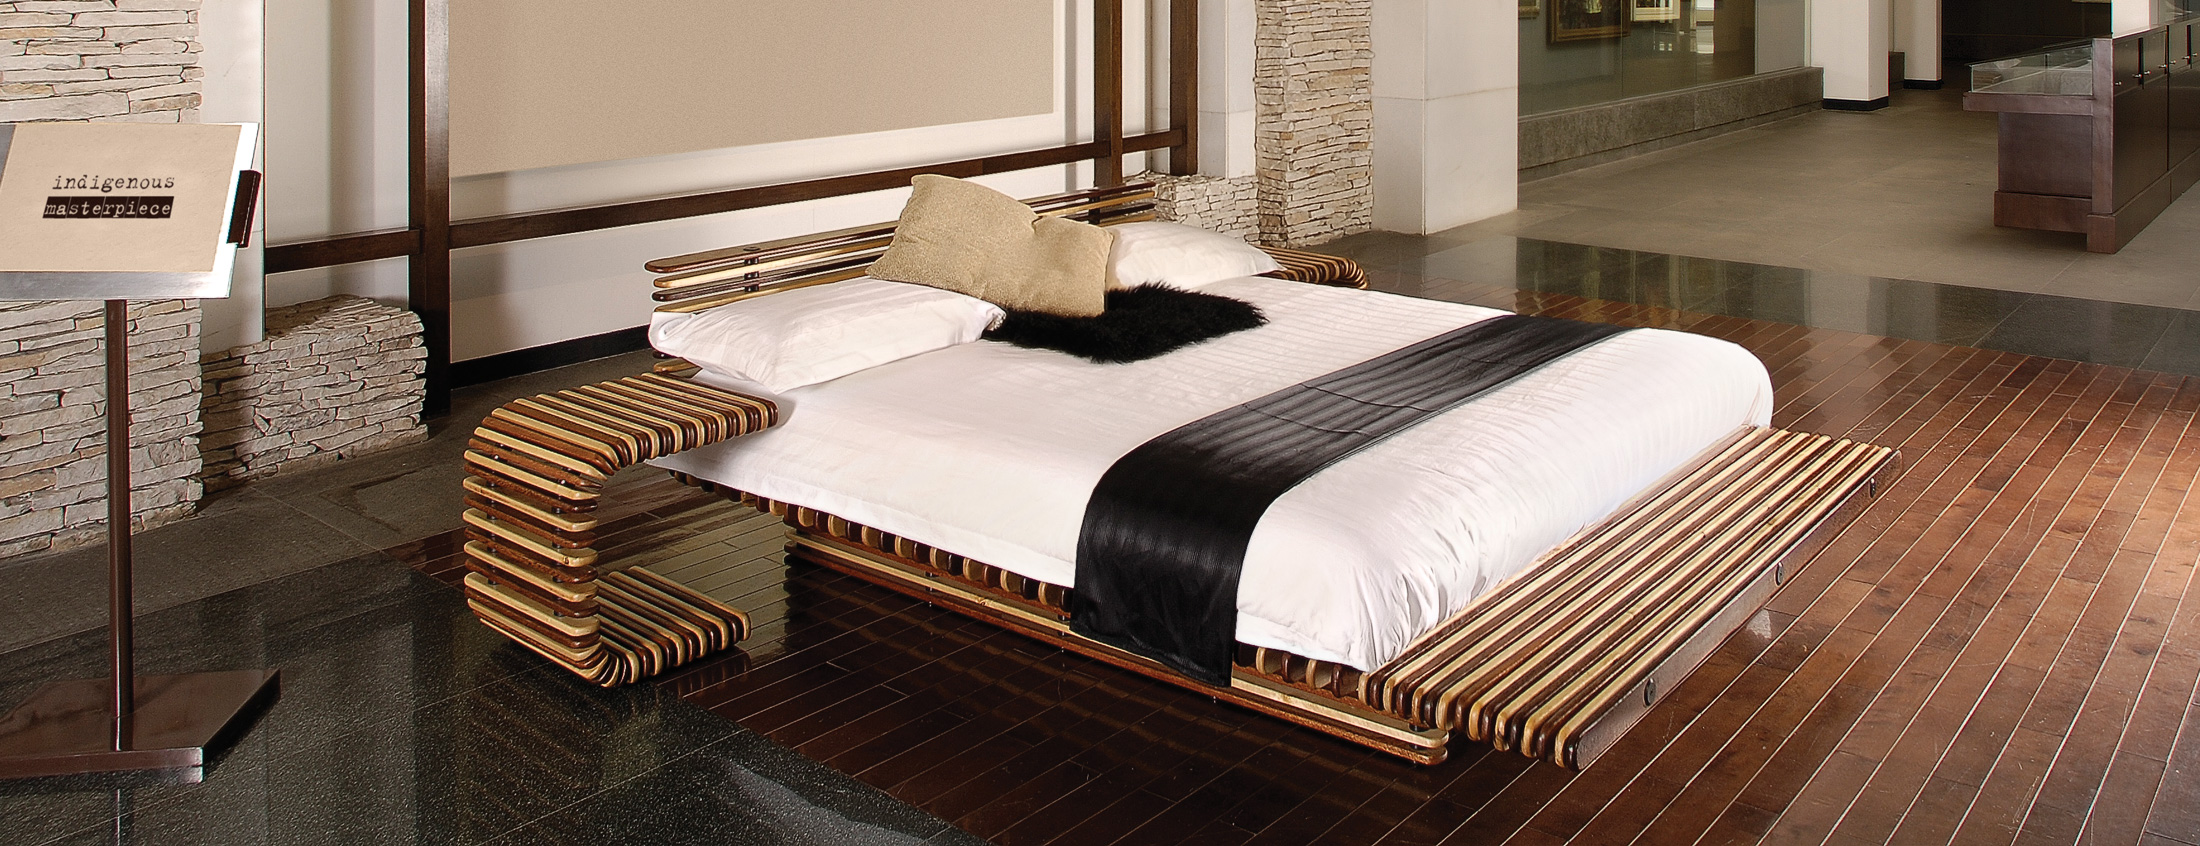 Luxor Bed Pacific Green Furniture Exotic Palmwood